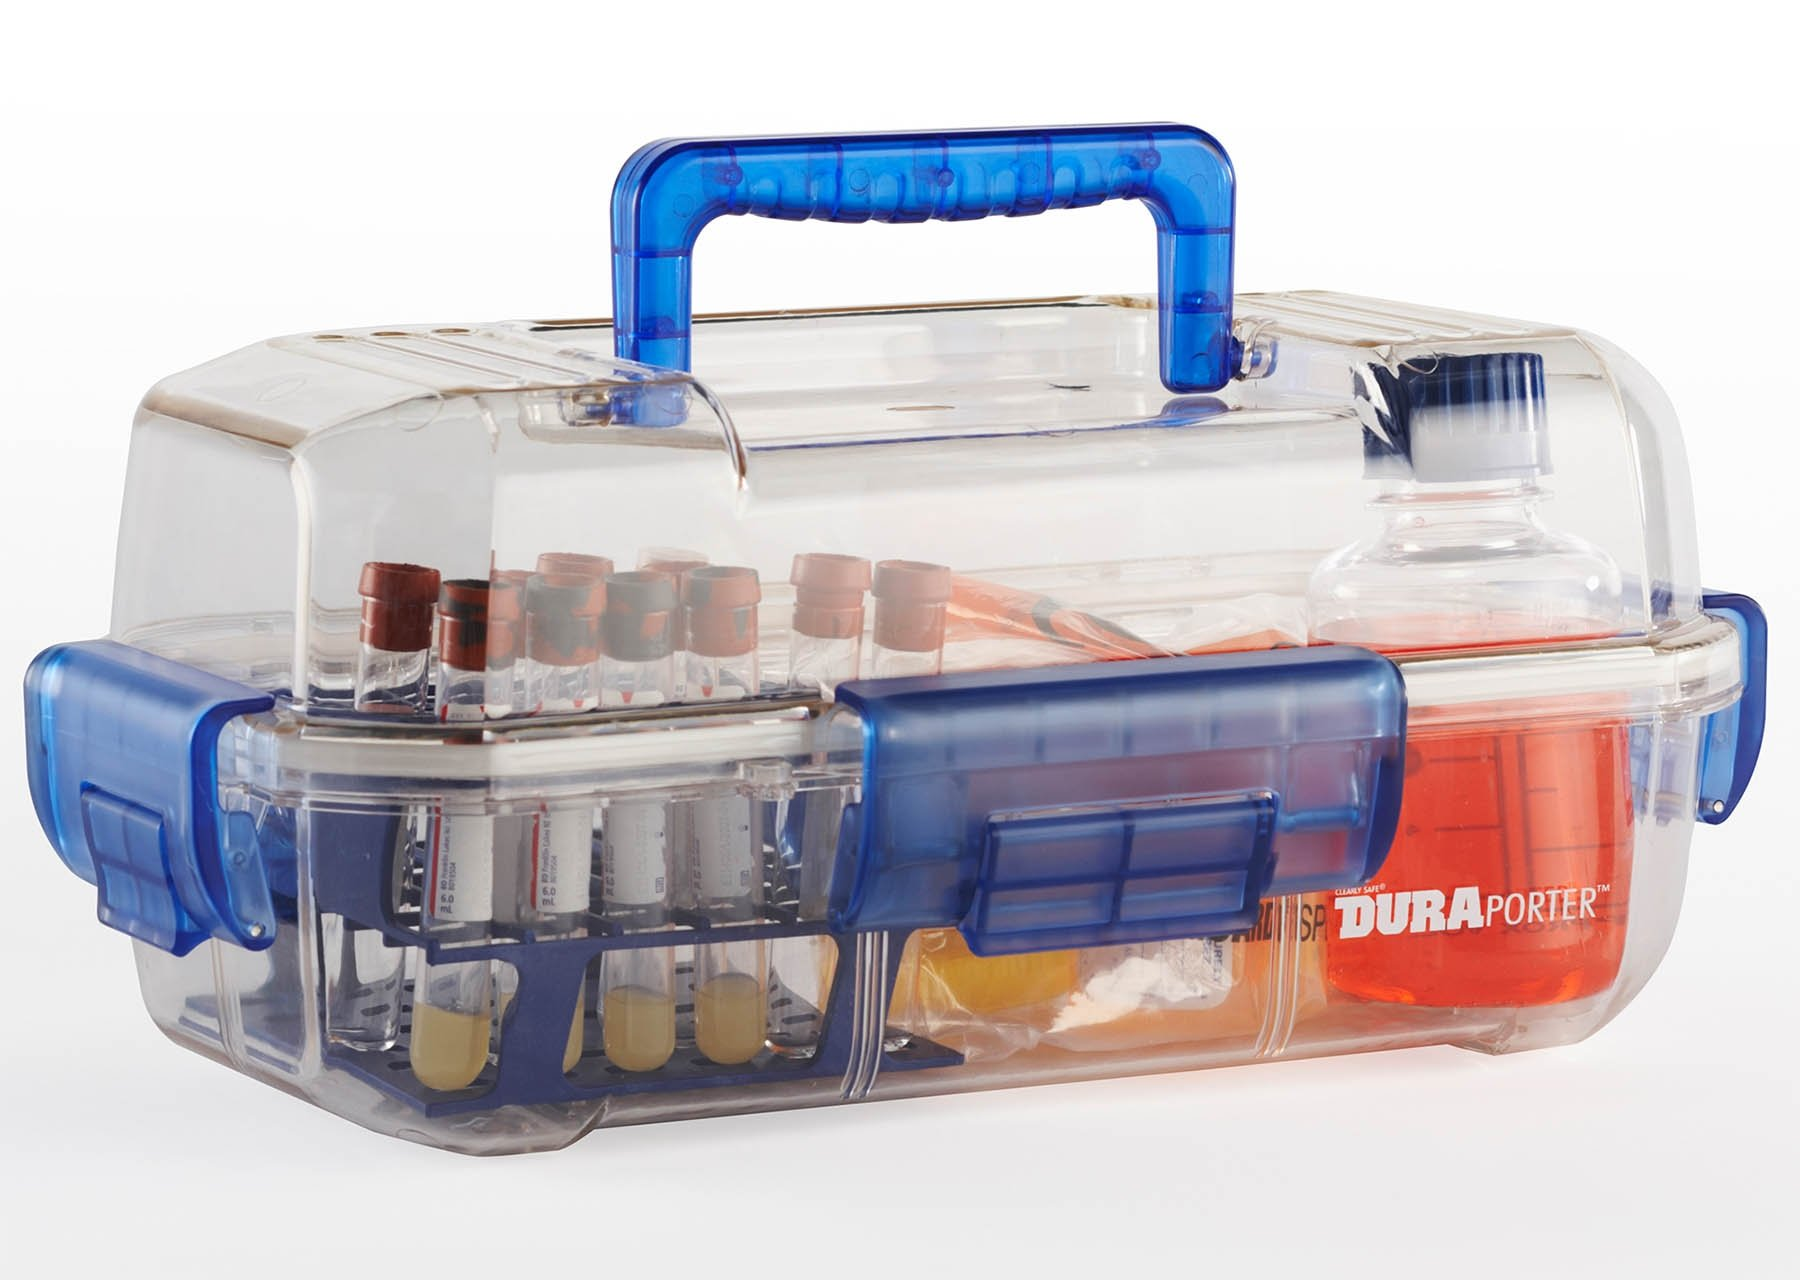 DuraPorter Transport Box - Clear with Blue Handle